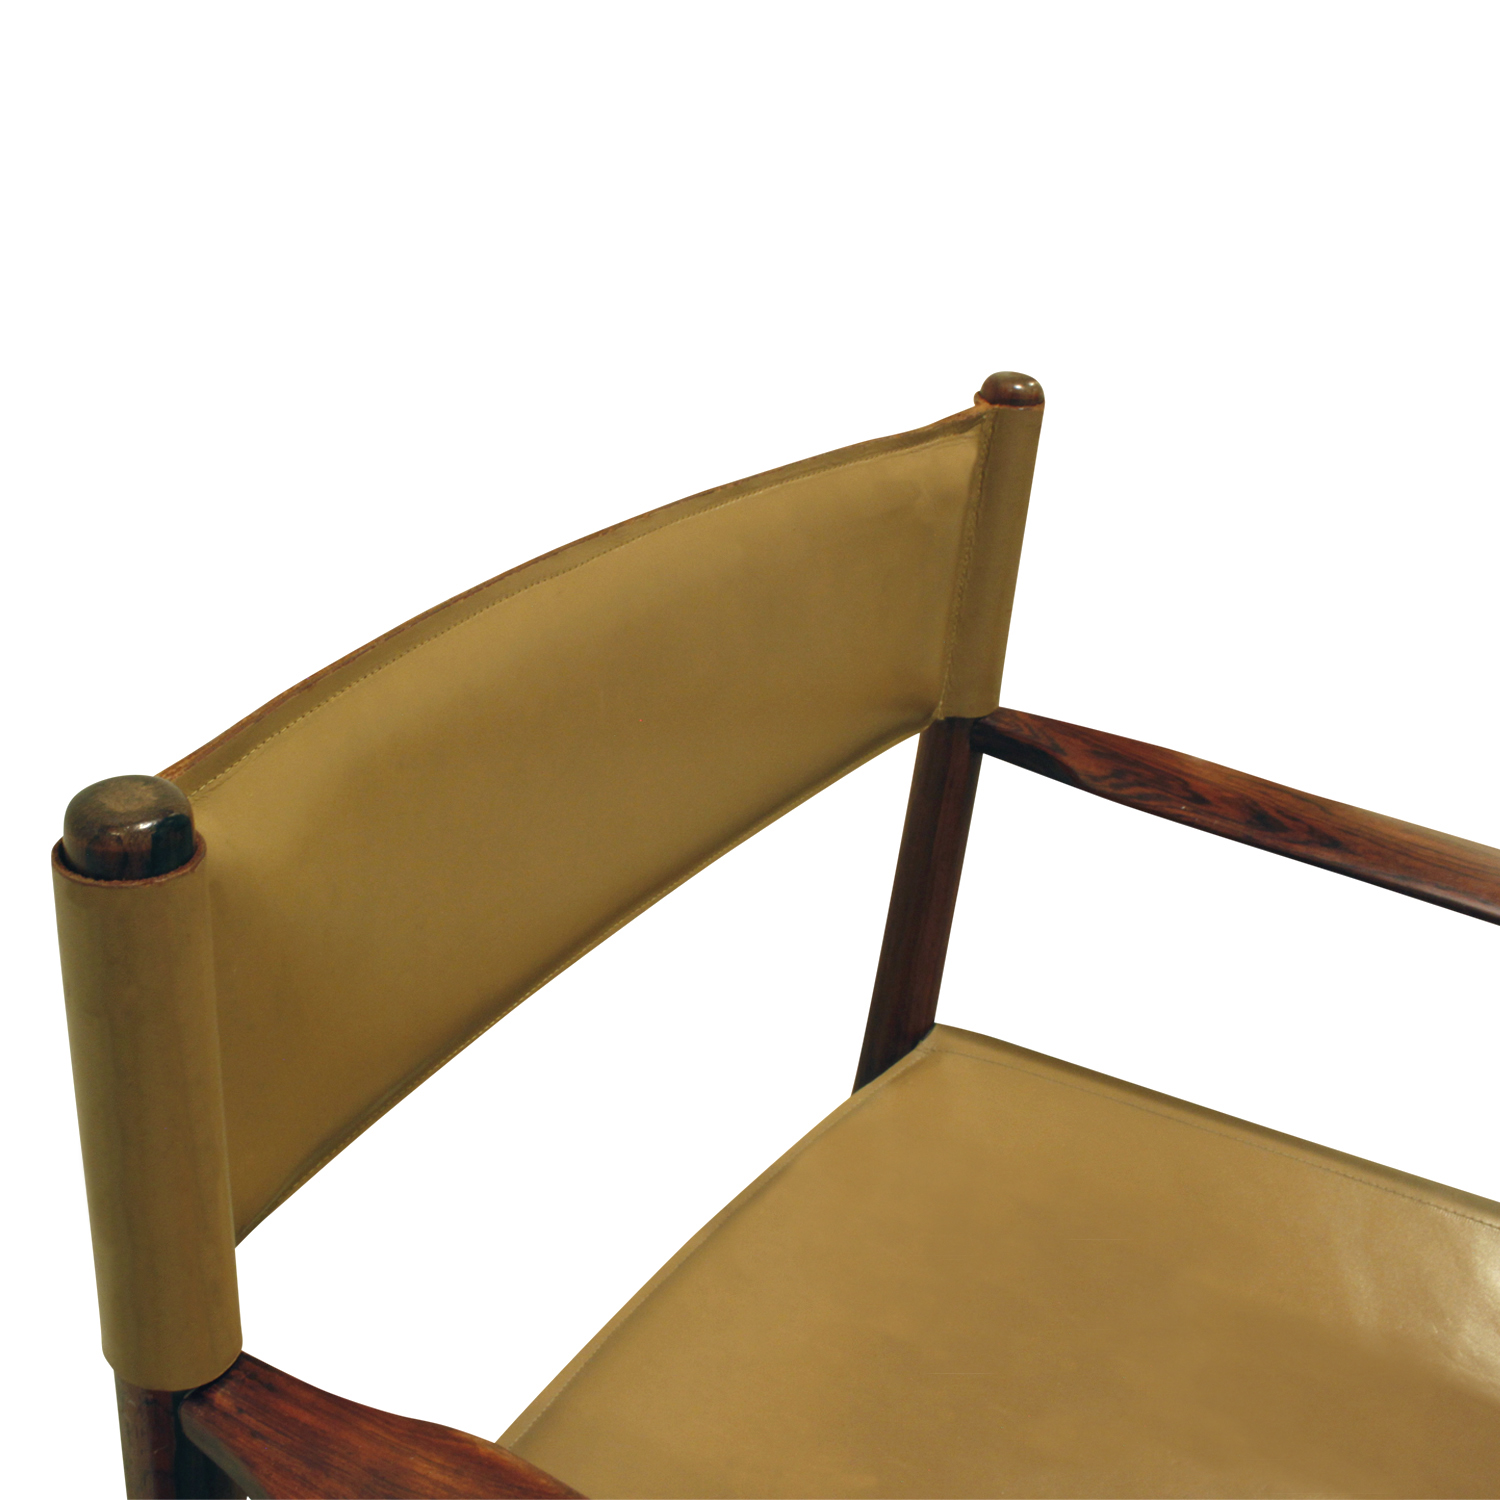 Ostervig 180 set10 rosewood+leather diningchairs190 dtl2.jpg